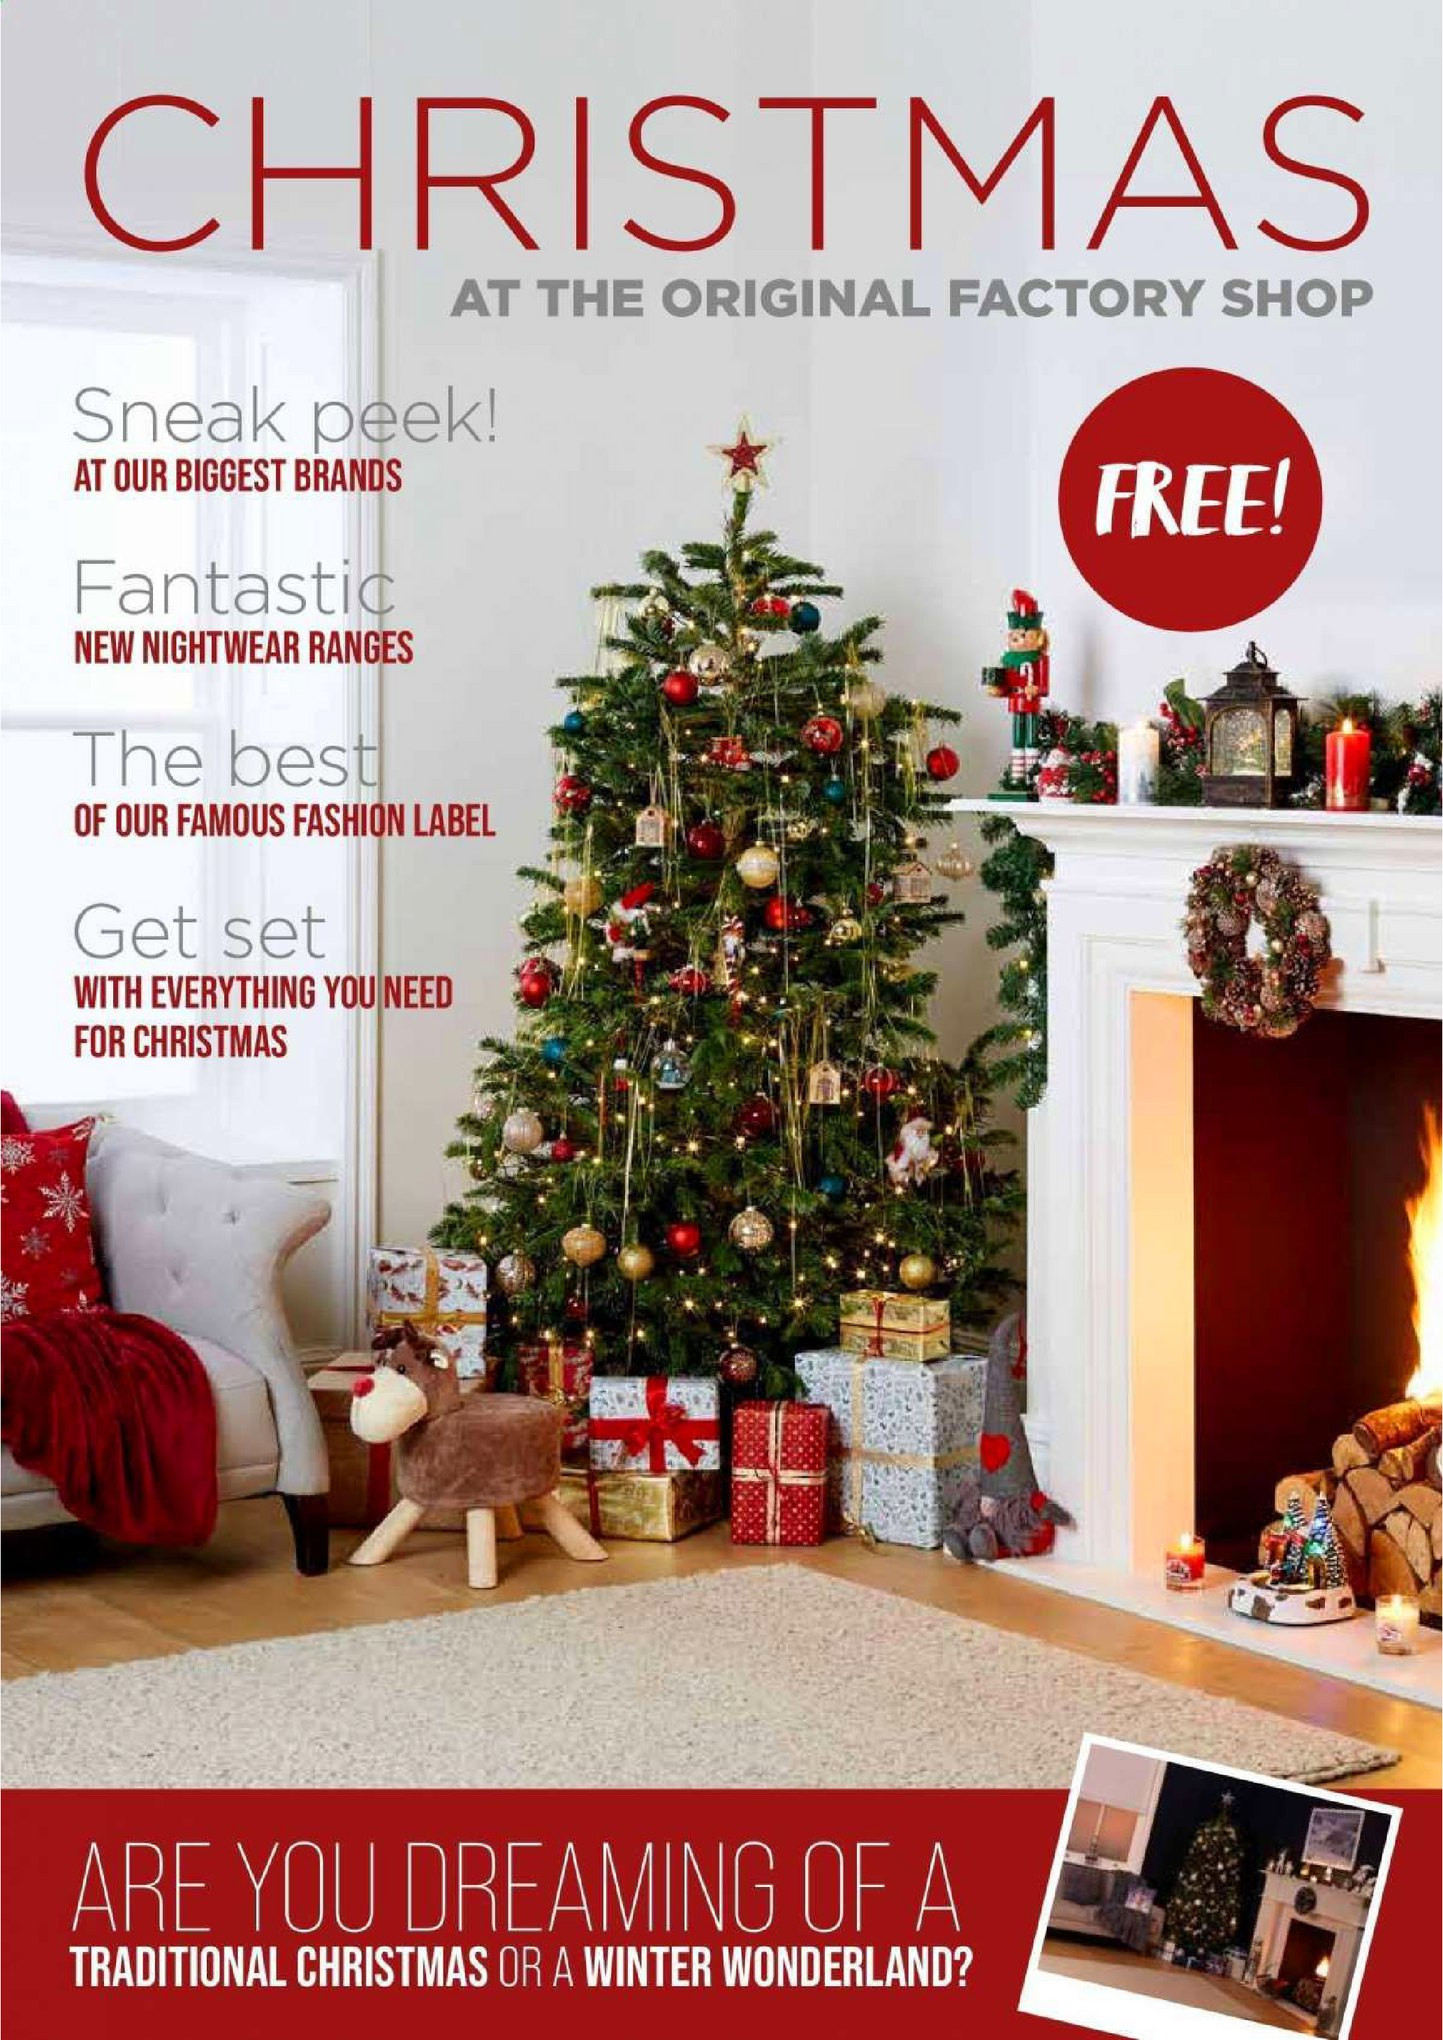 The Original Factory Shop Offers 7th December - 24th December 2020 Christmas Offers